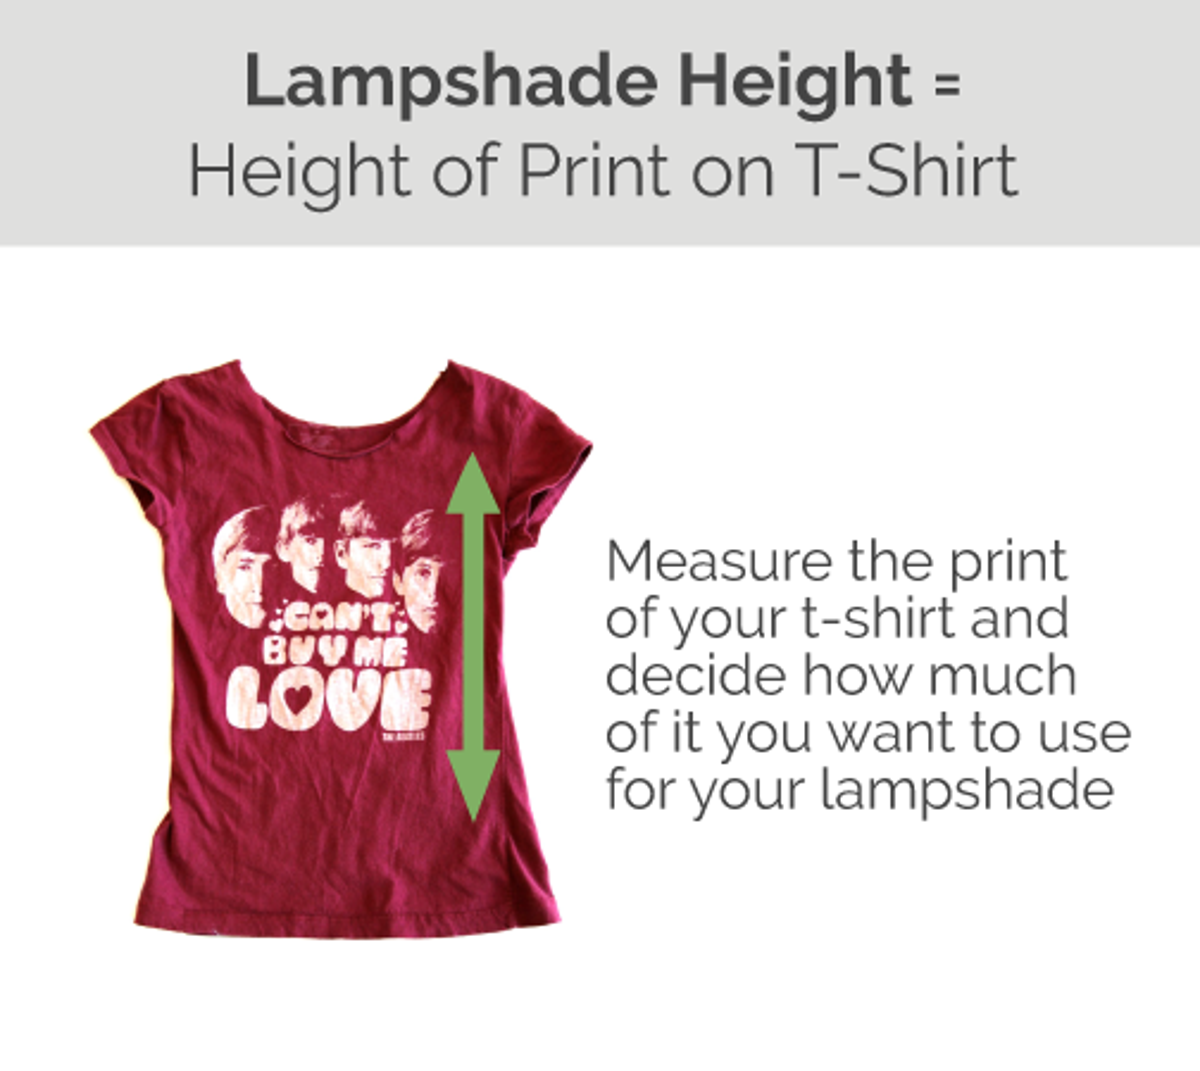 Turn Your Old T-Shirt into a Lampshade with Our DIY